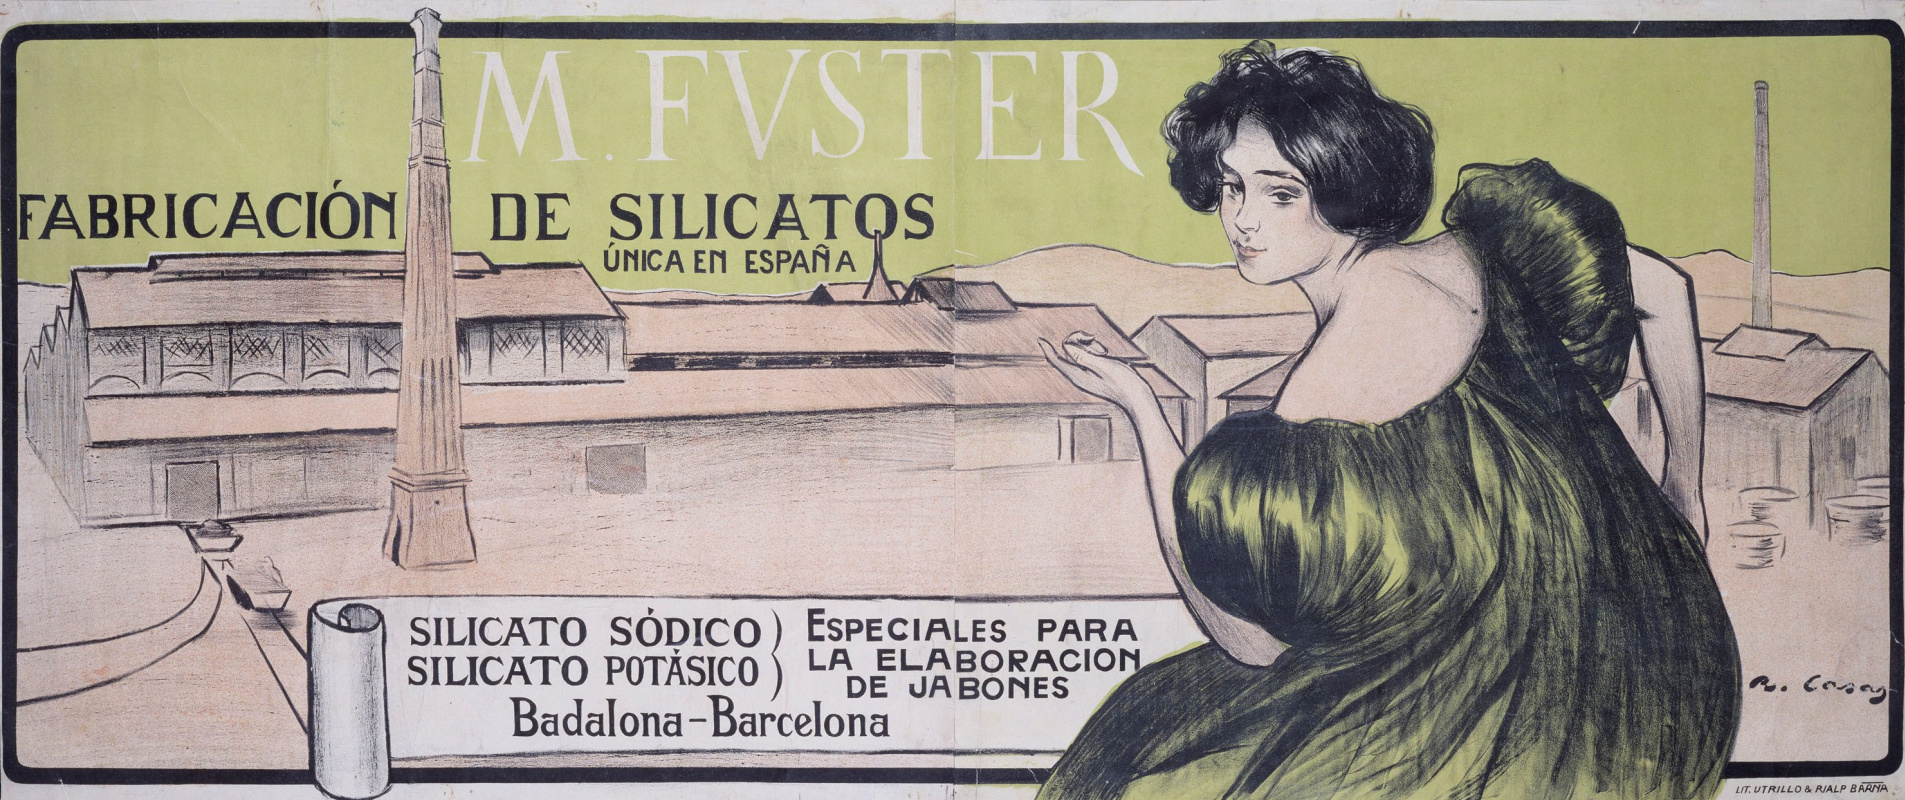 Ramon Casas i Carbó. Advertising poster silicate production